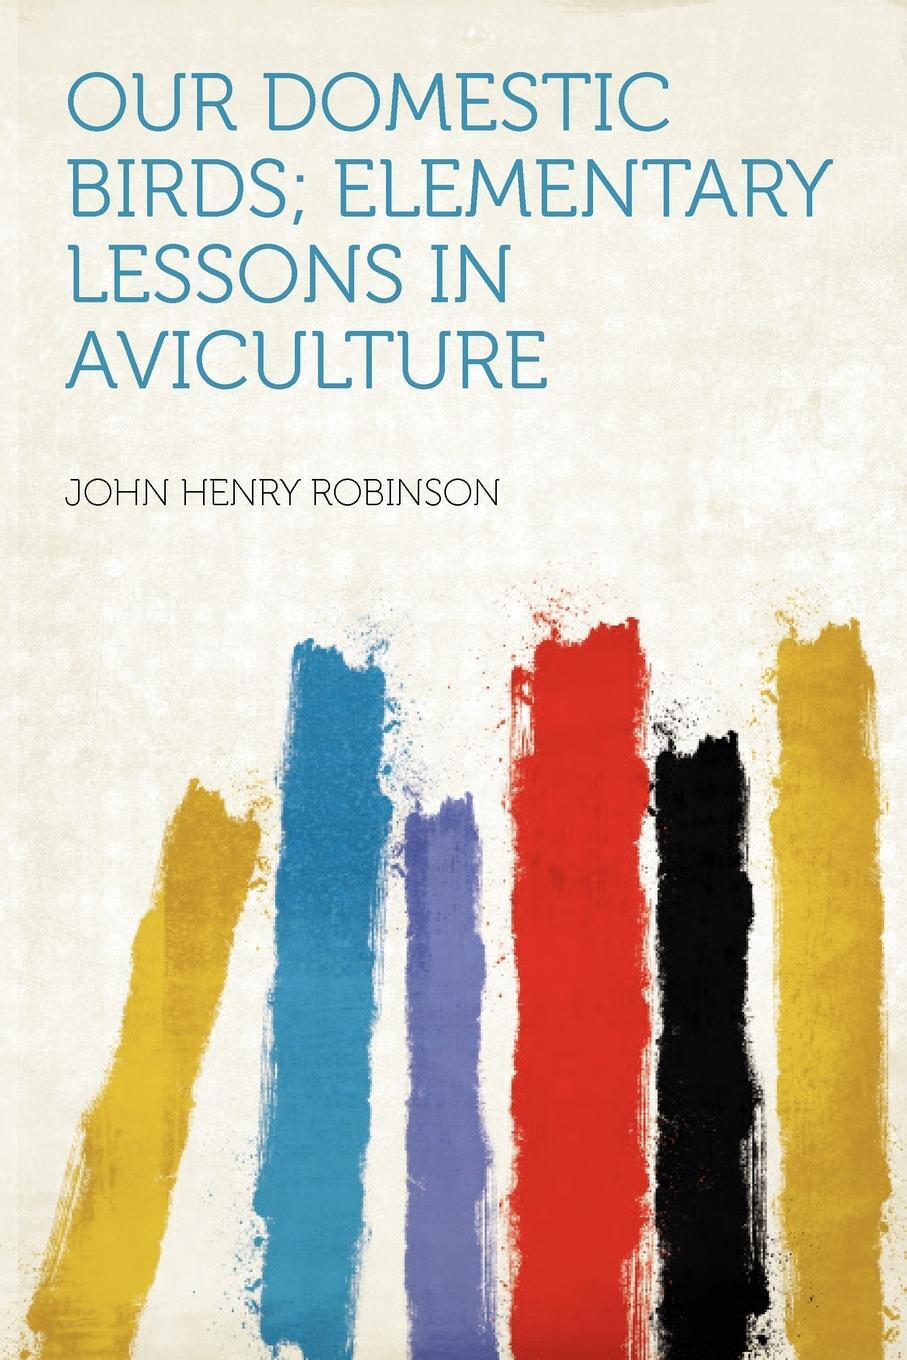 Our Domestic Birds; Elementary Lessons in Aviculture. John Henry Robinson